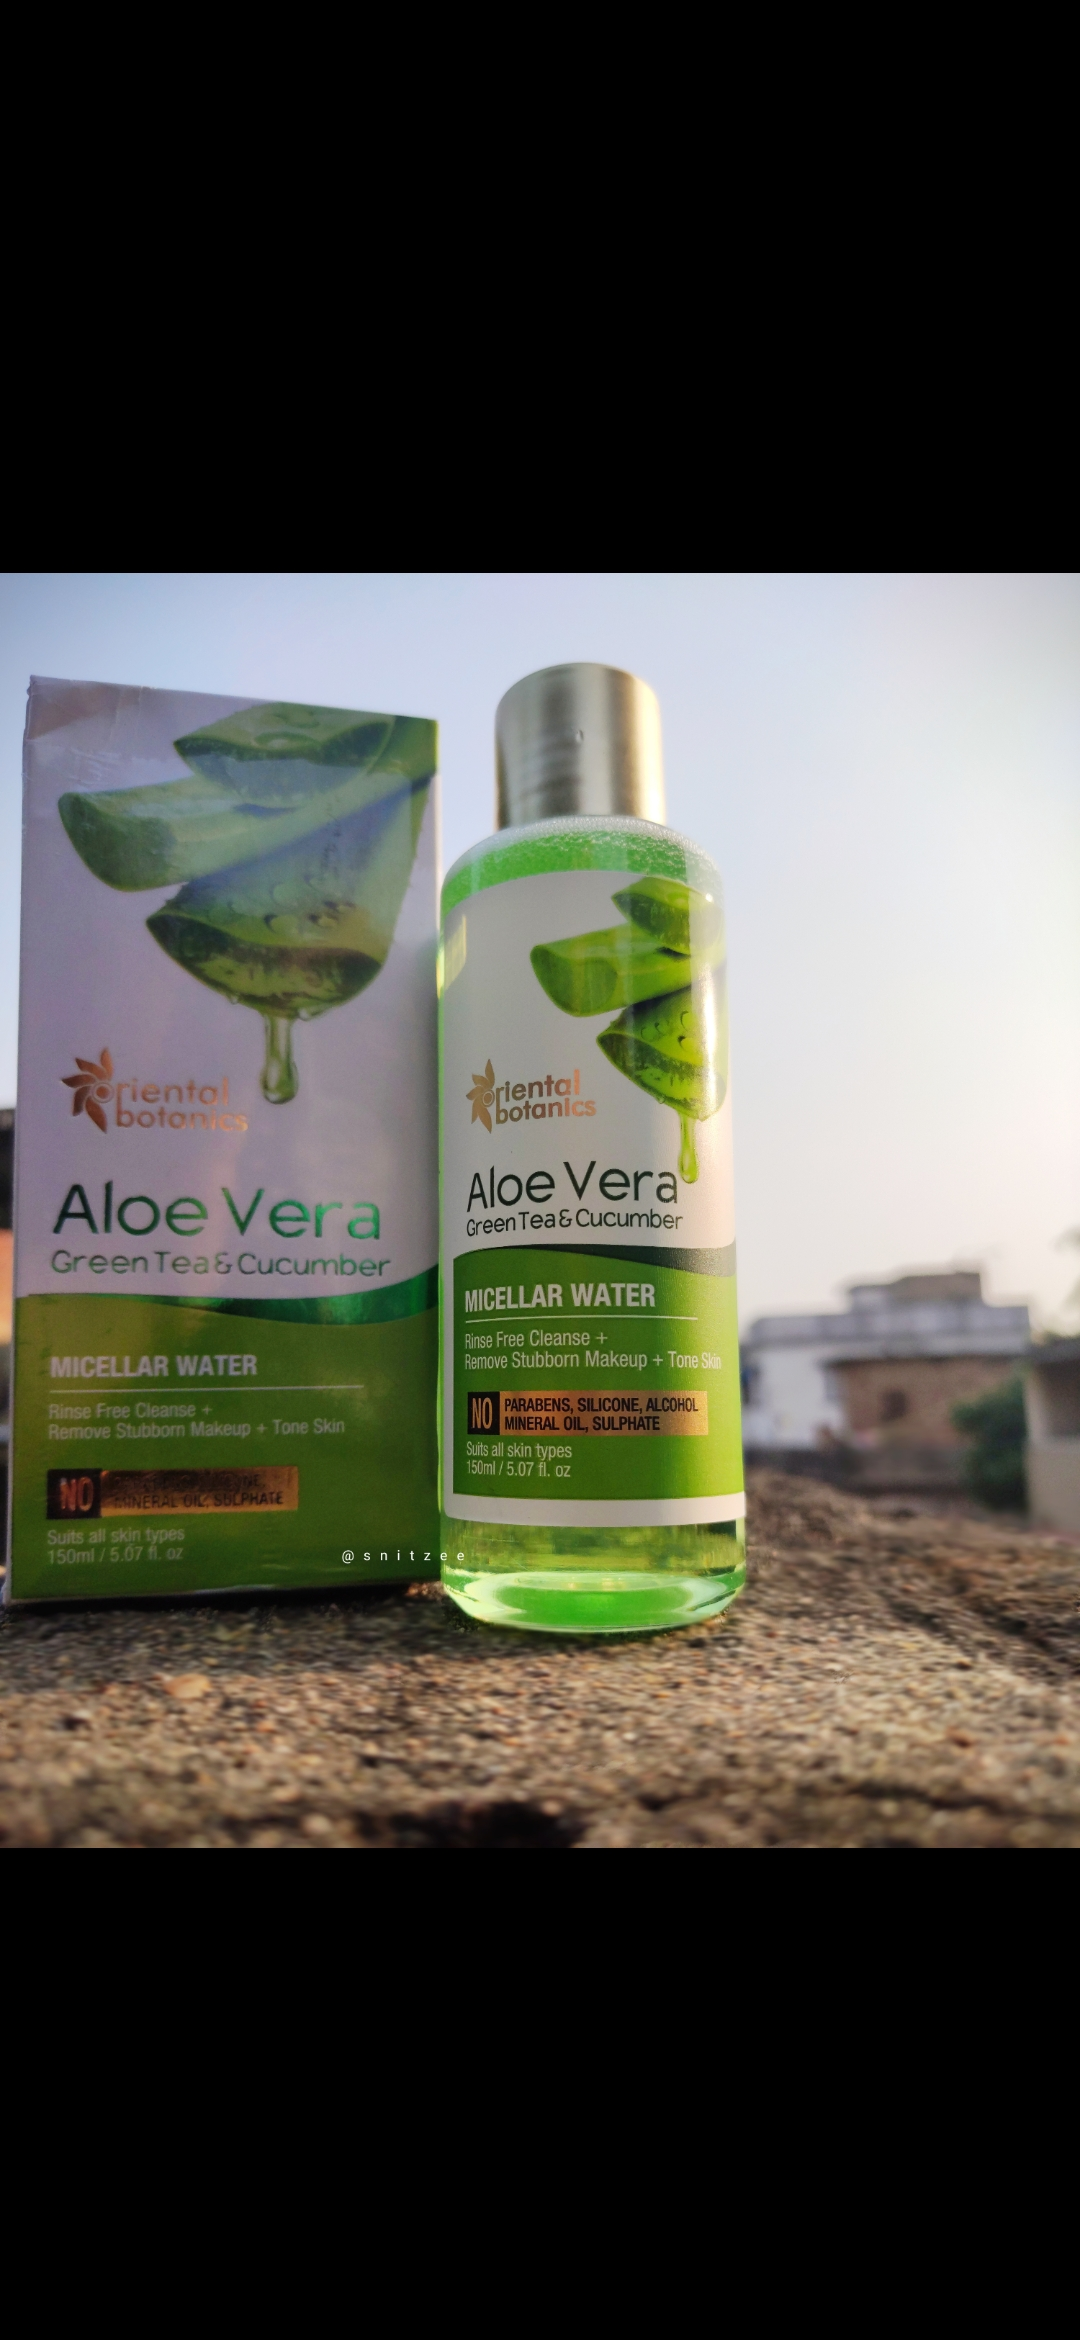 Oriental Botanics Aloe Vera, Green Tea & Cucumber Micellar Water-Good for Daily Use-By snitzee